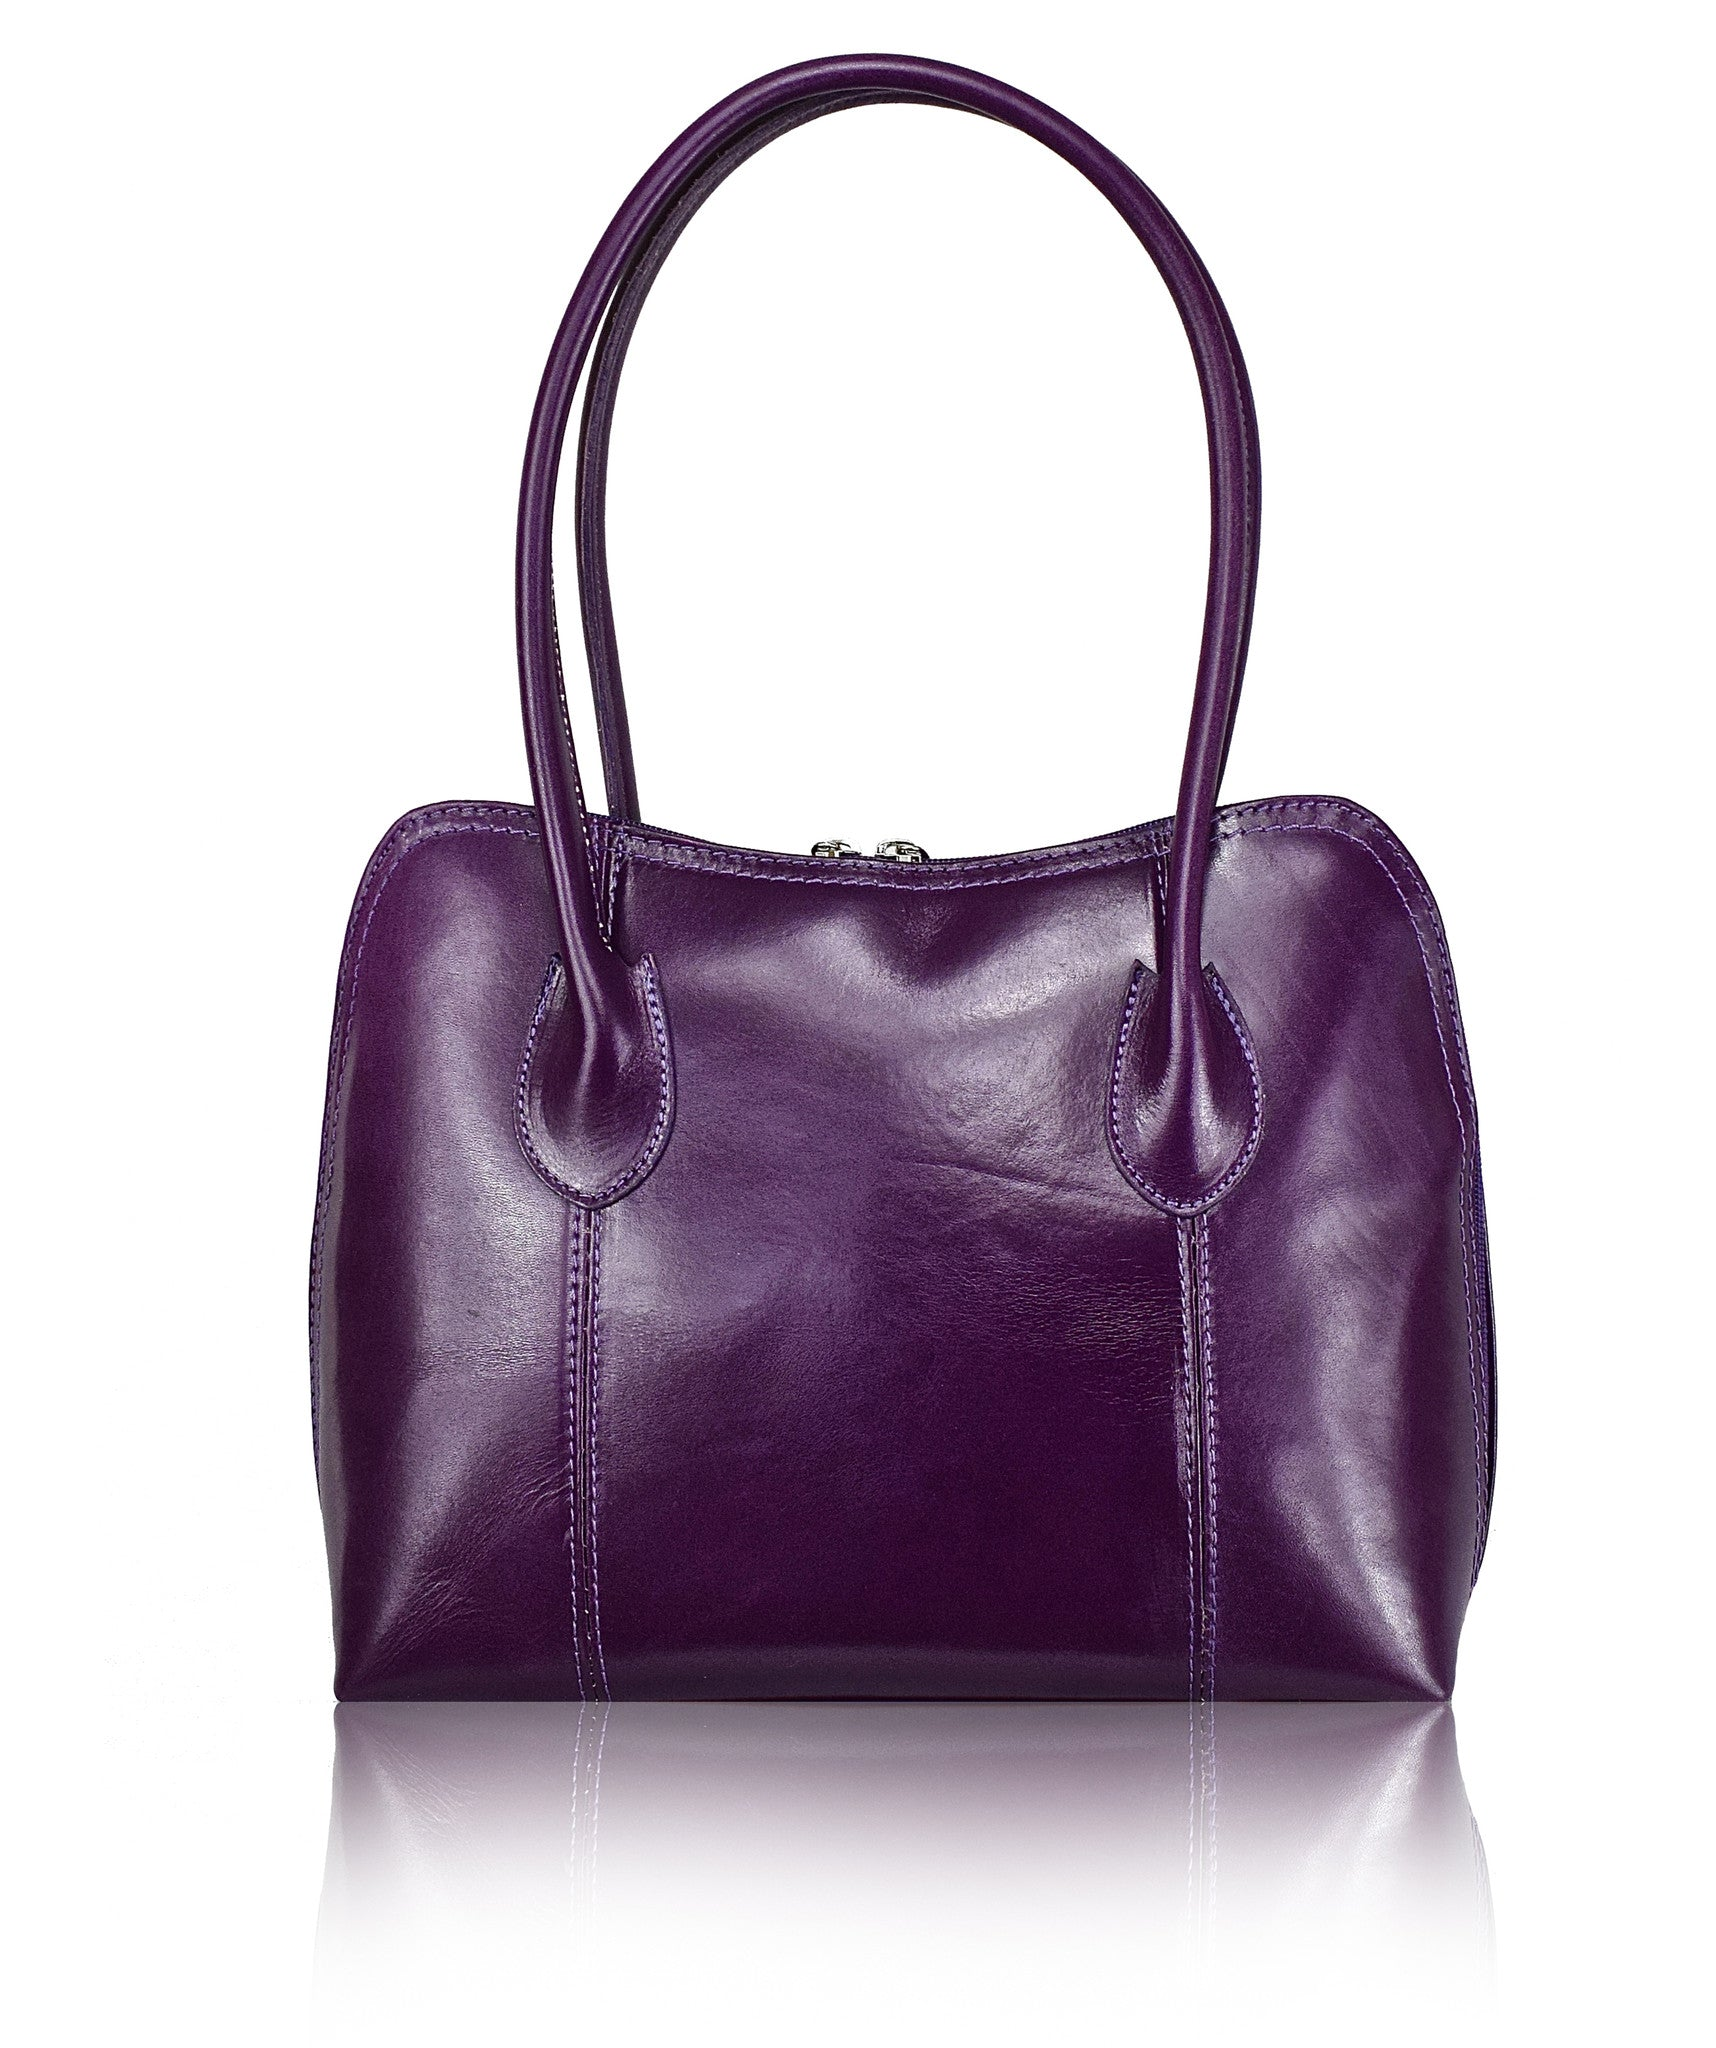 f709e30e130f Purple Leather Shoulder Bag - Made in Italy